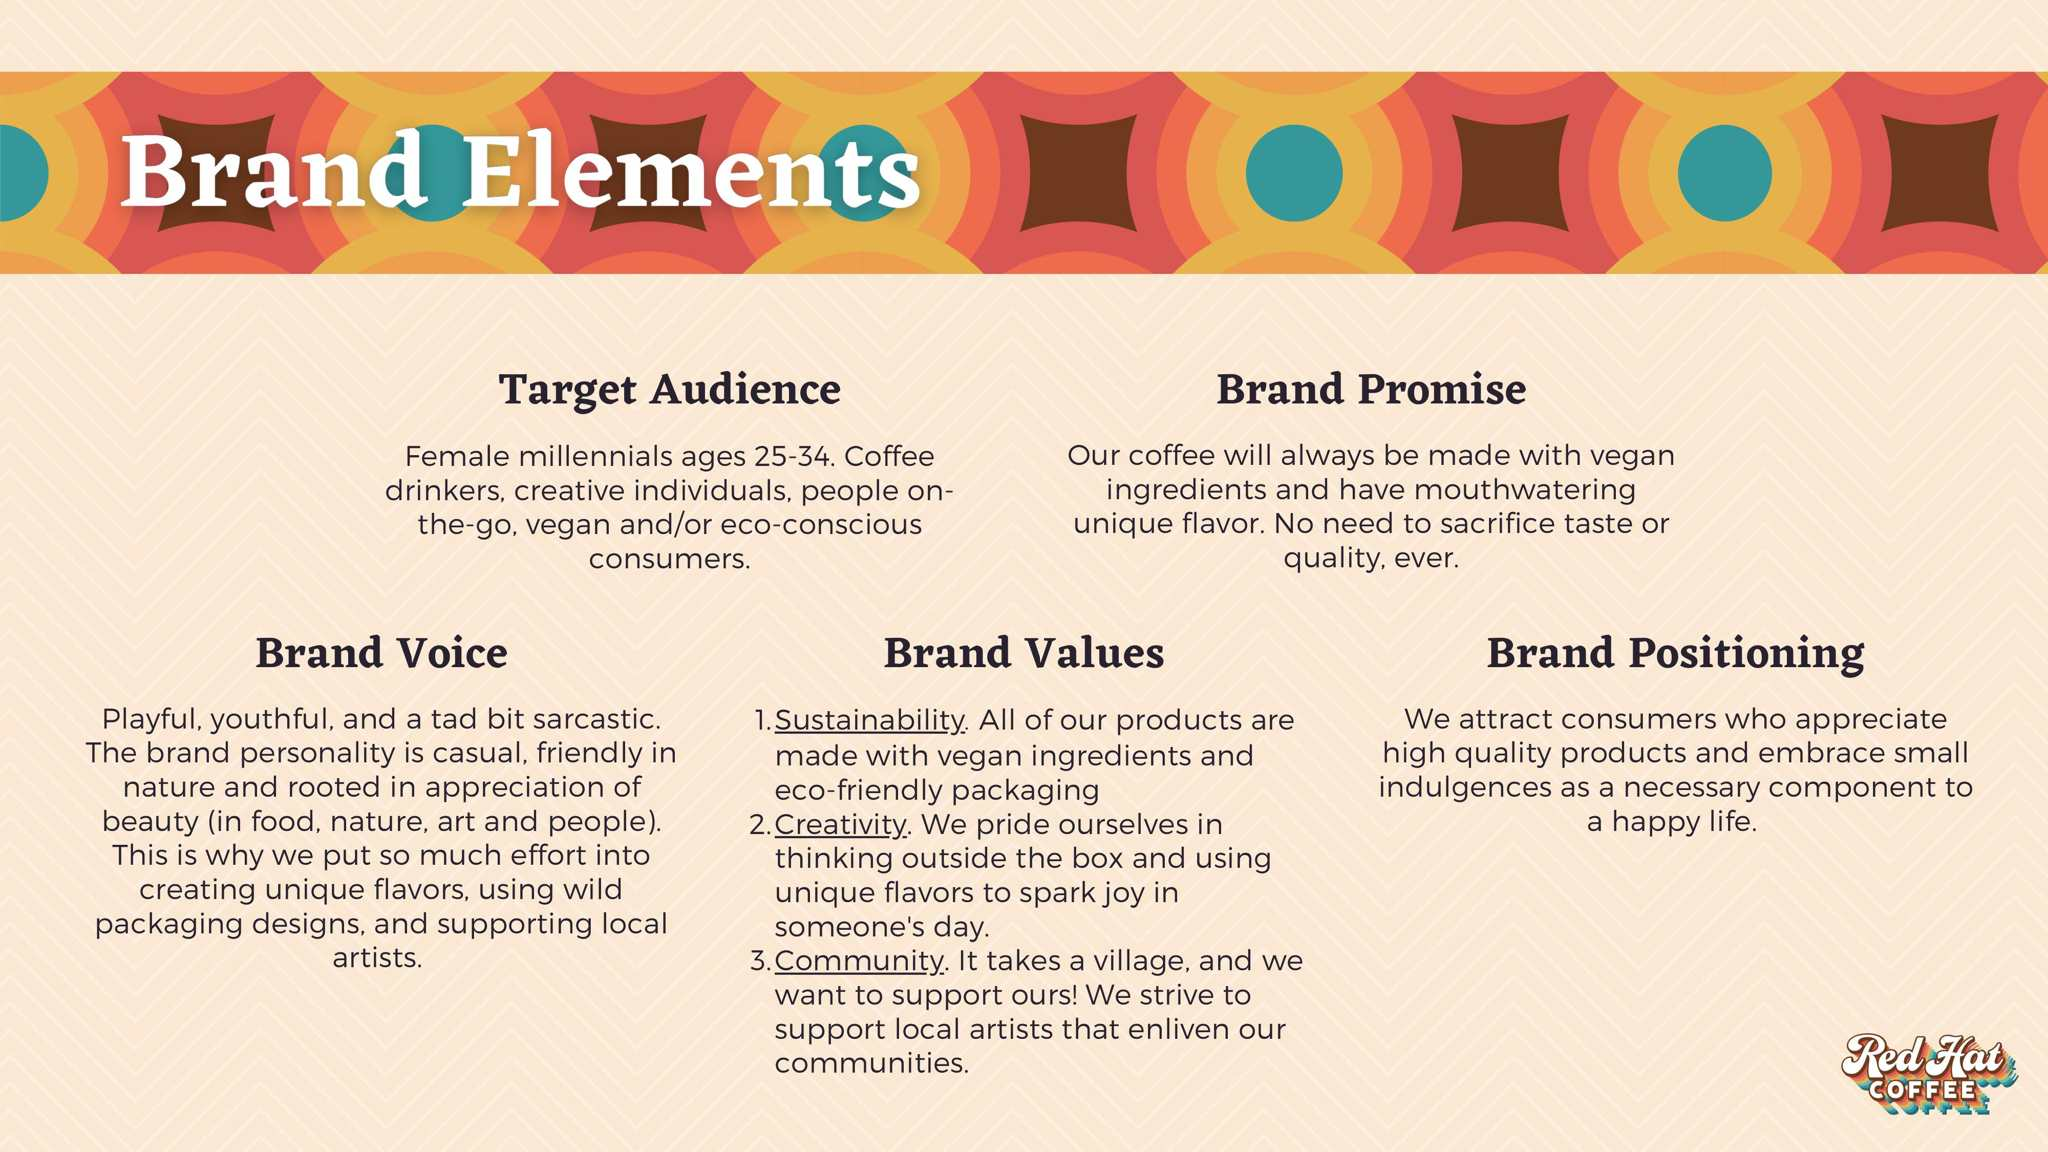 Target audience of female millennials ages 25-34. Brand Values are sustainability, creativity and community.